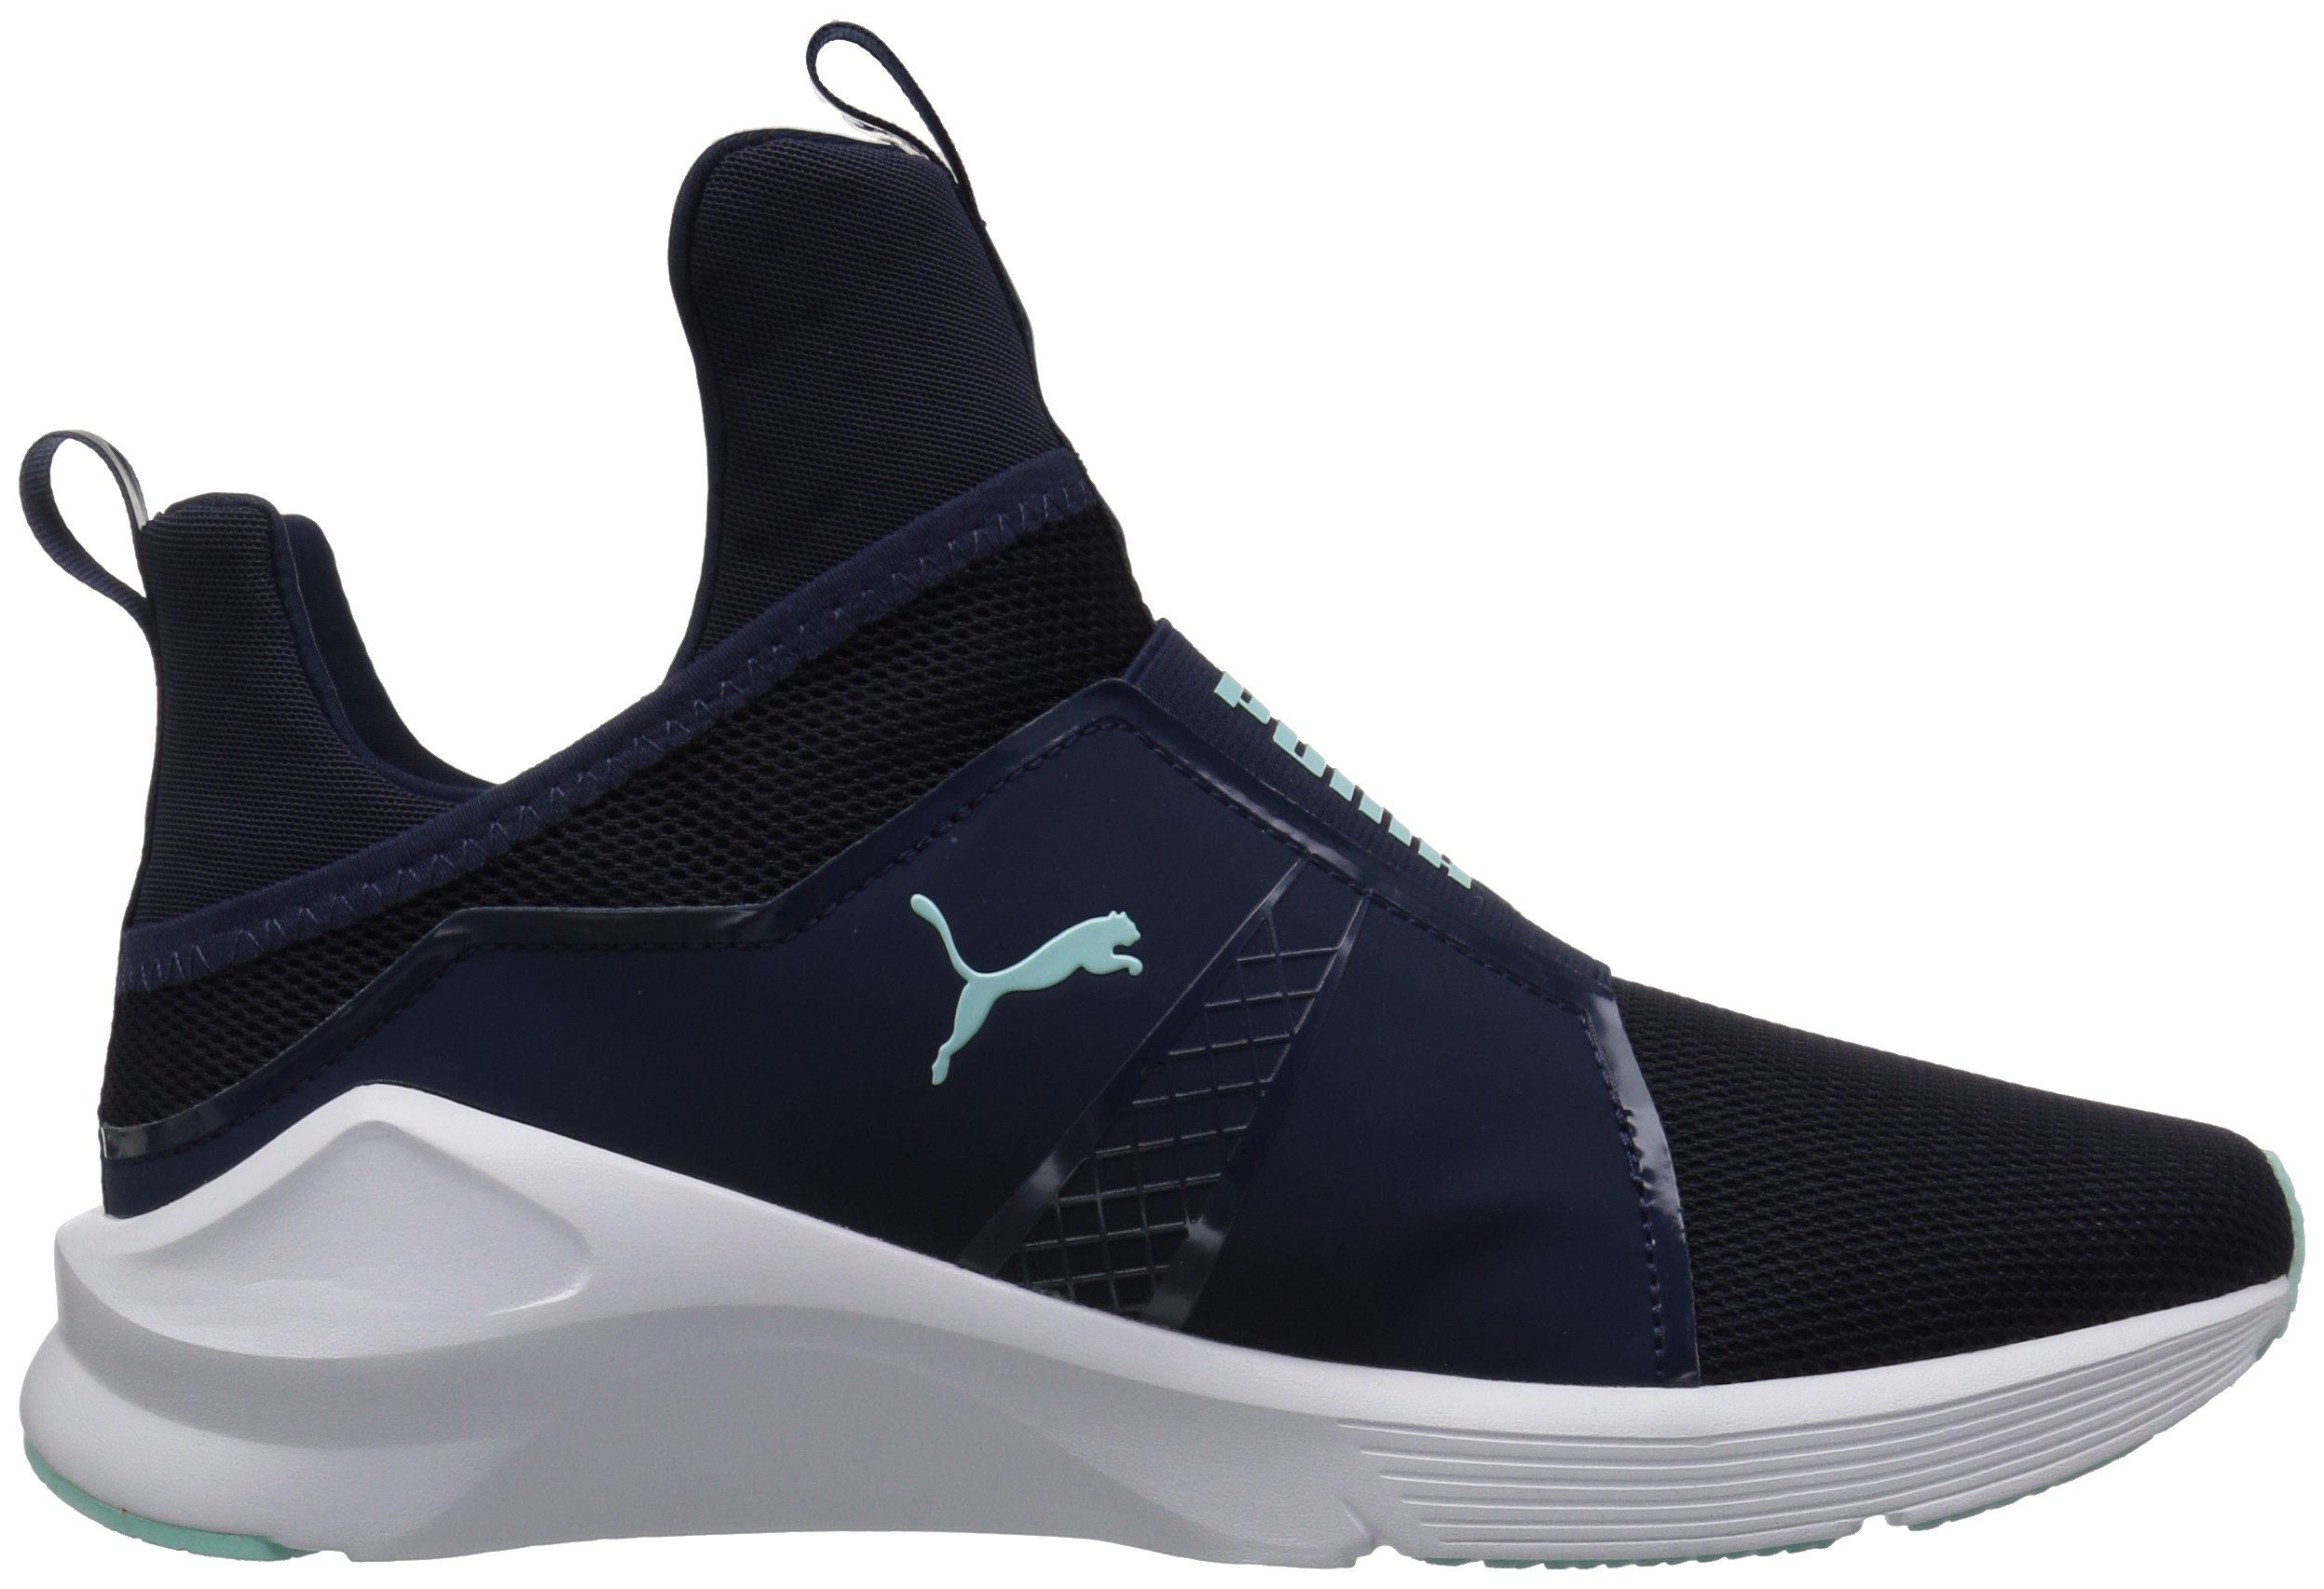 PUMA Women's Fierce Core Sneaker, Peacoat-Island Paradise, 9 M US by PUMA (Image #7)